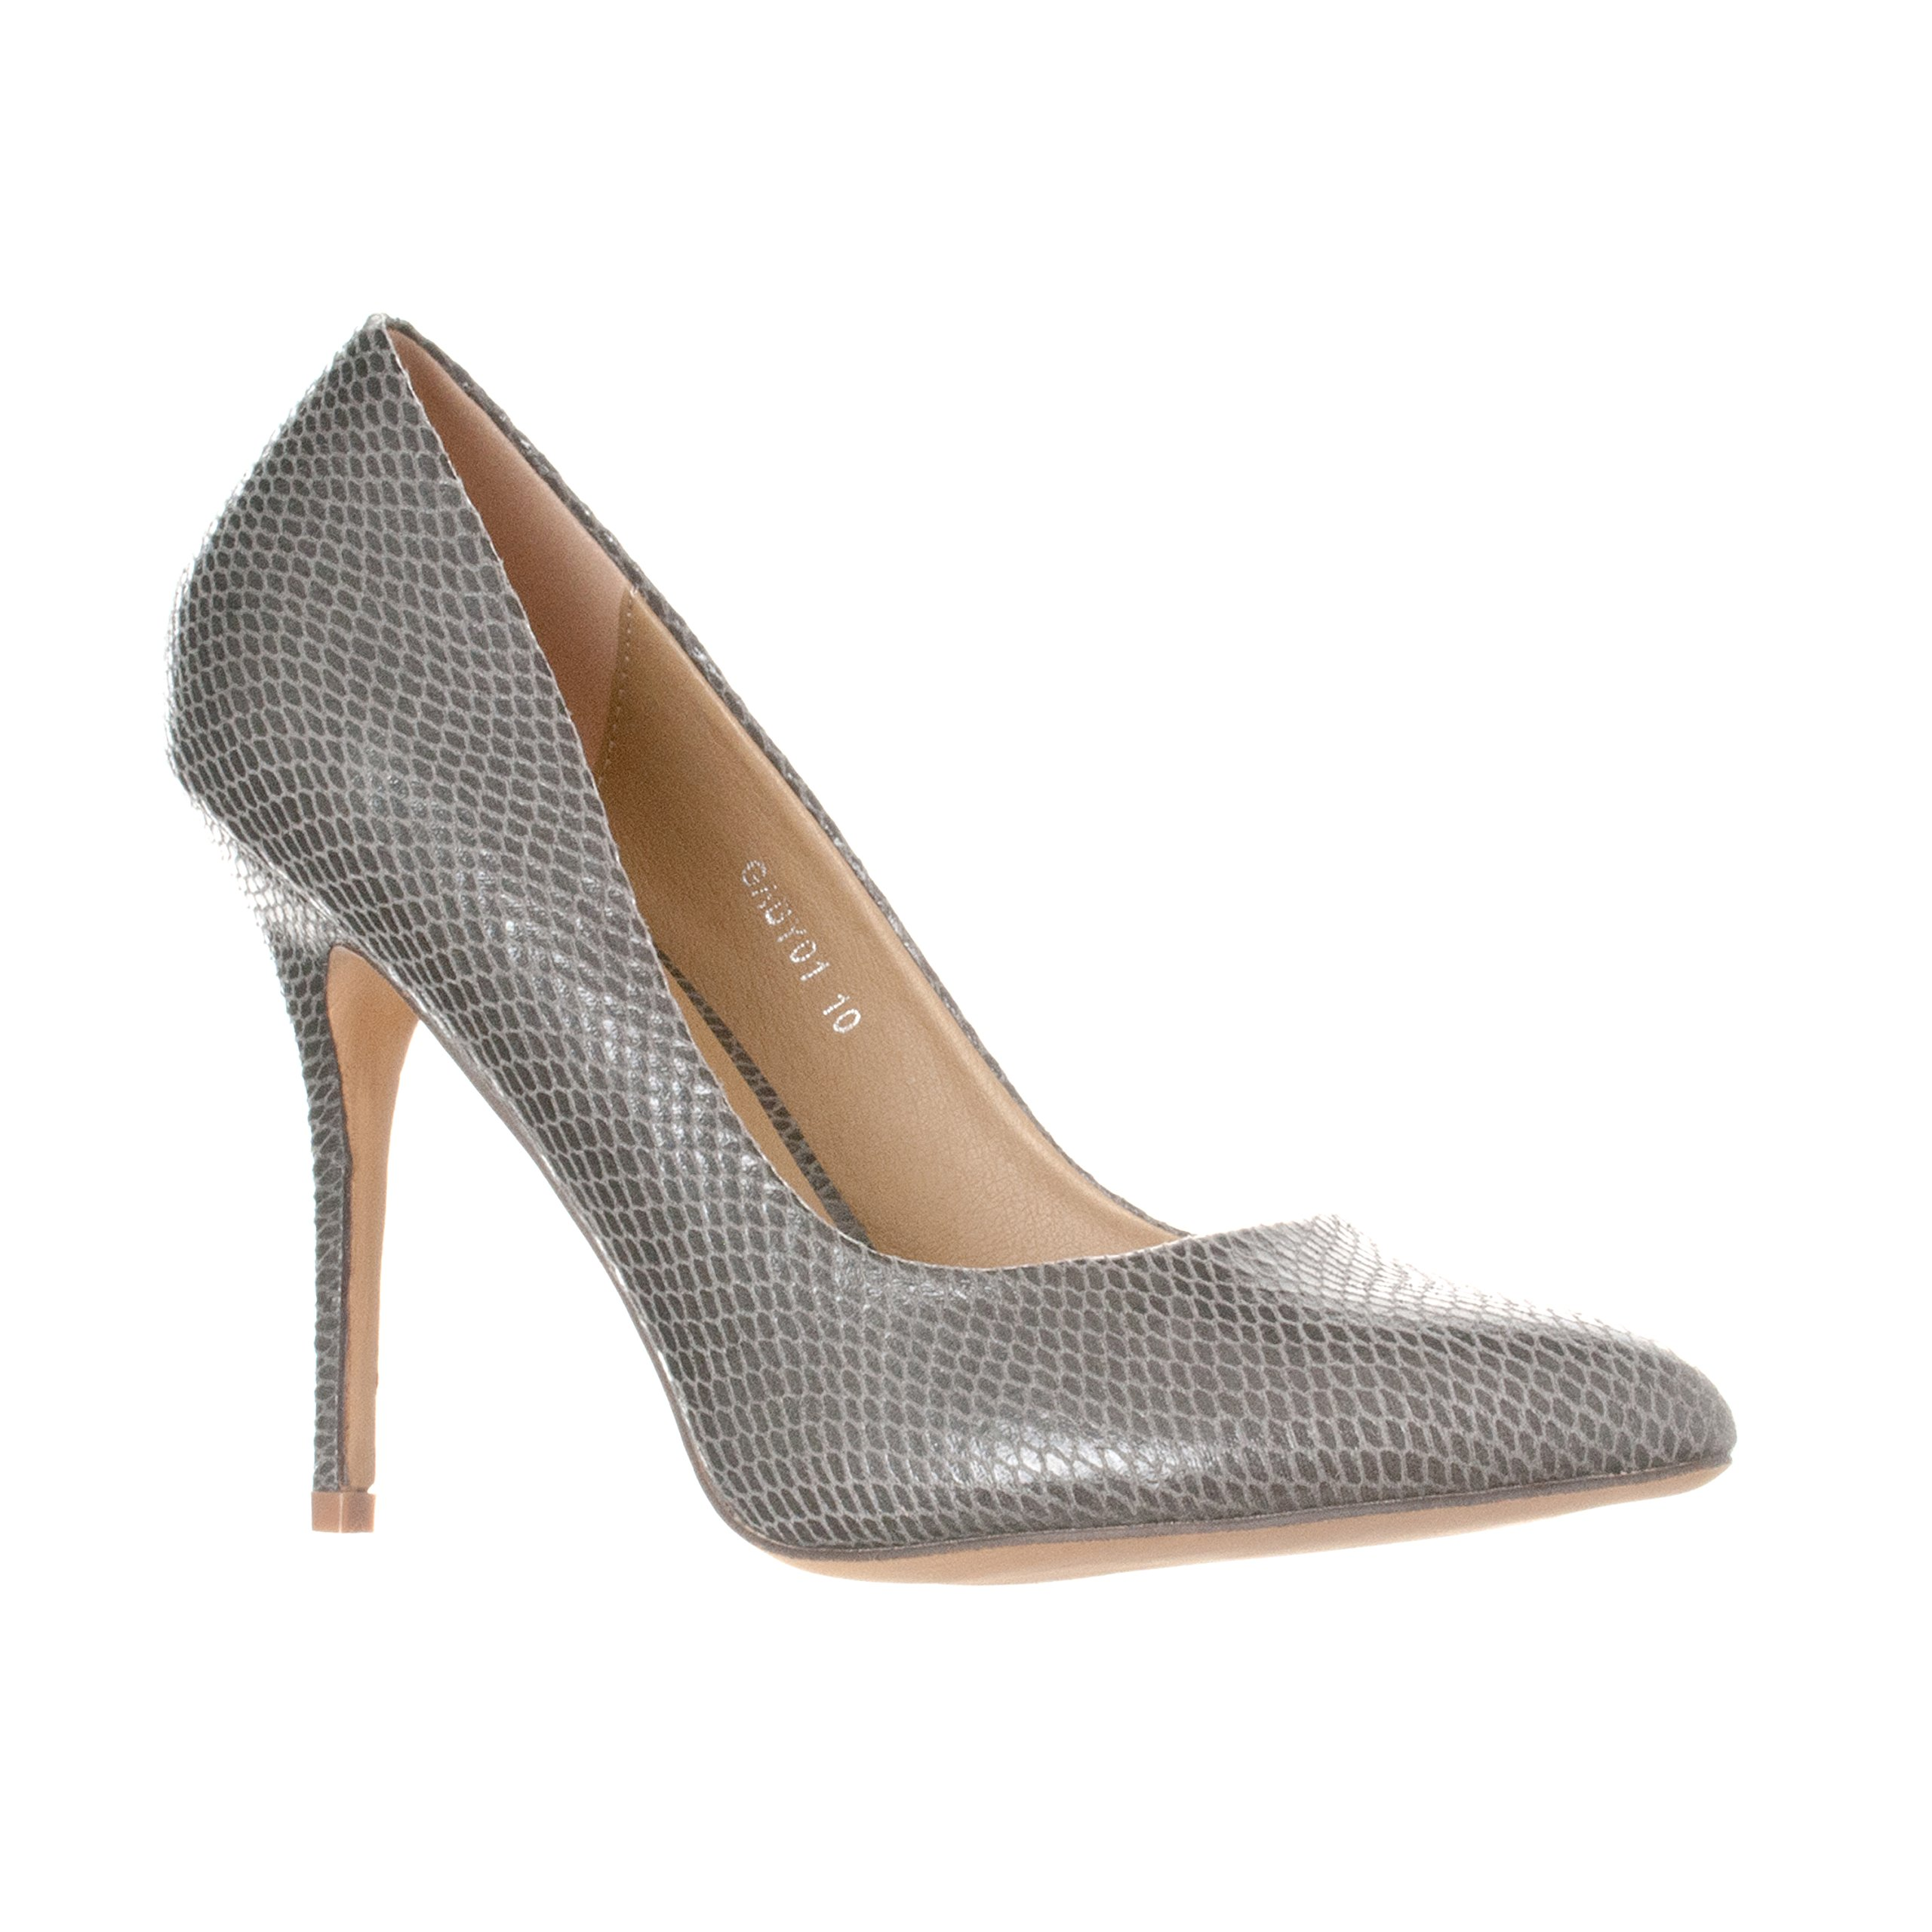 Riverberry Women's Gaby Pointed, Closed Toe Stiletto Pump Heels, Grey Snake, 9